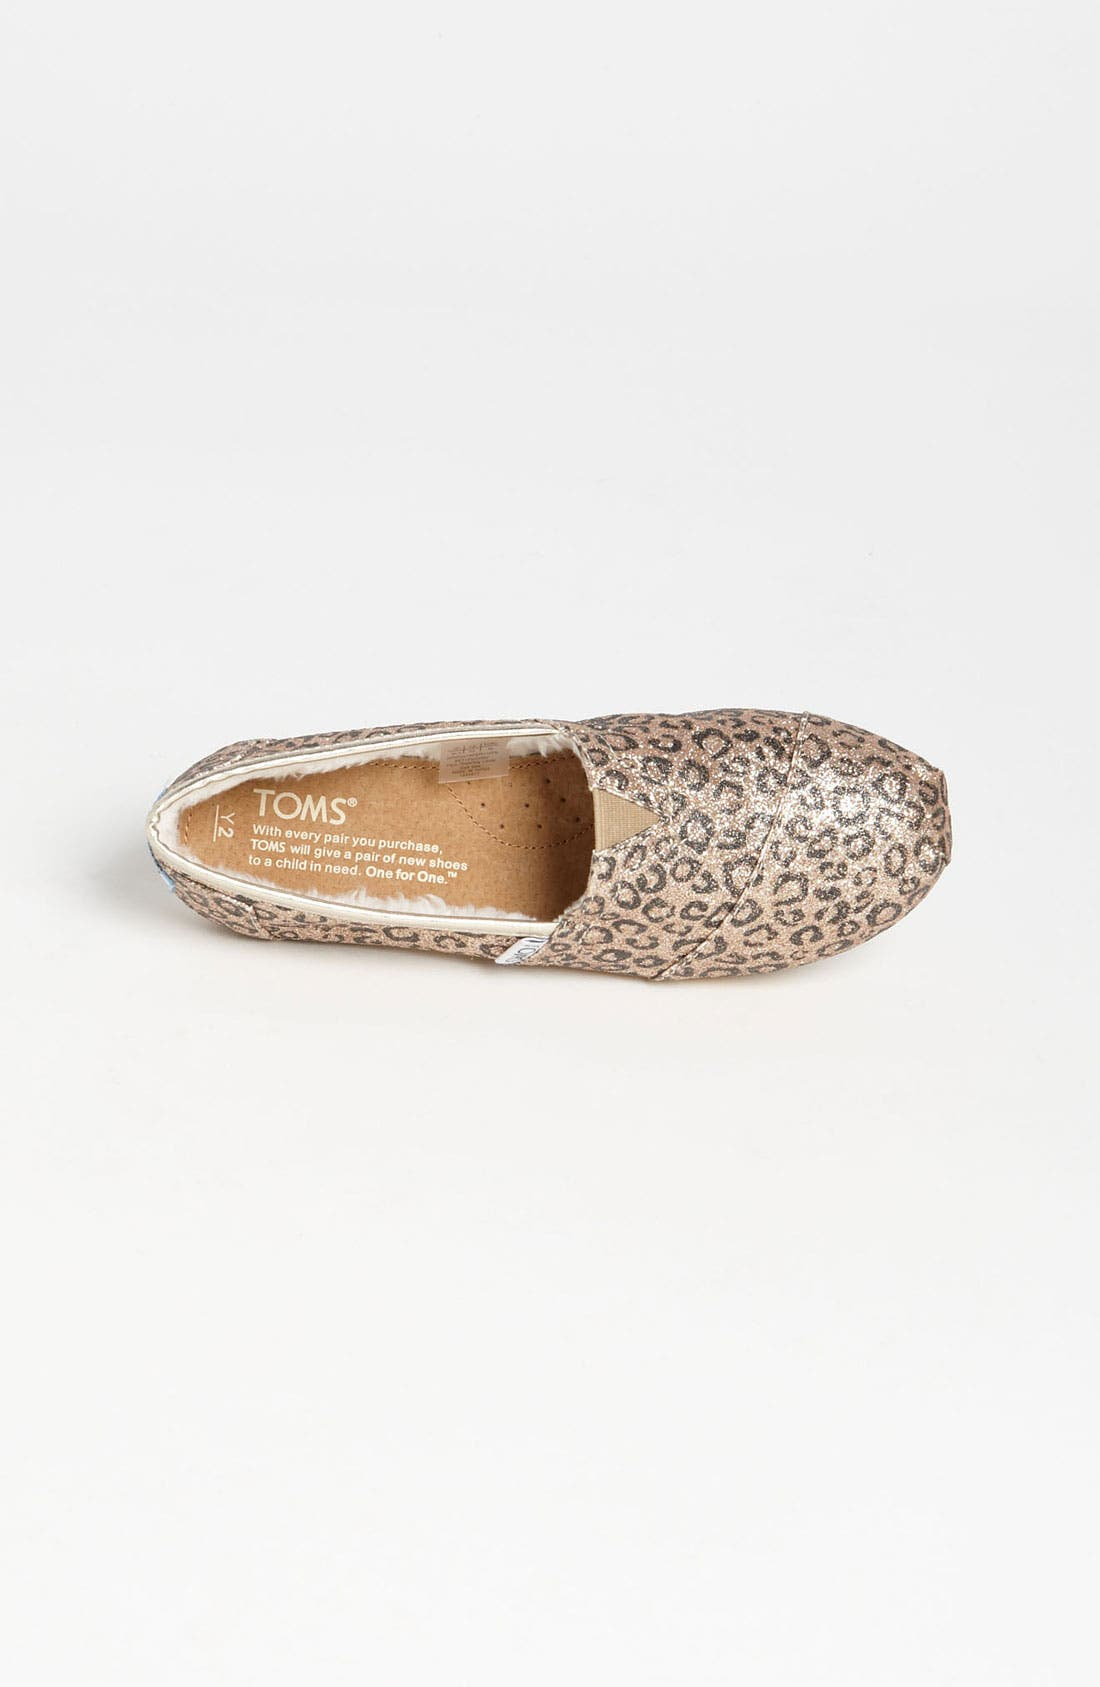 Alternate Image 3  - TOMS 'Classic Youth - Glitter' Print Slip-On (Toddler, Little Kid & Big Kid) (Nordstrom Exclusive)